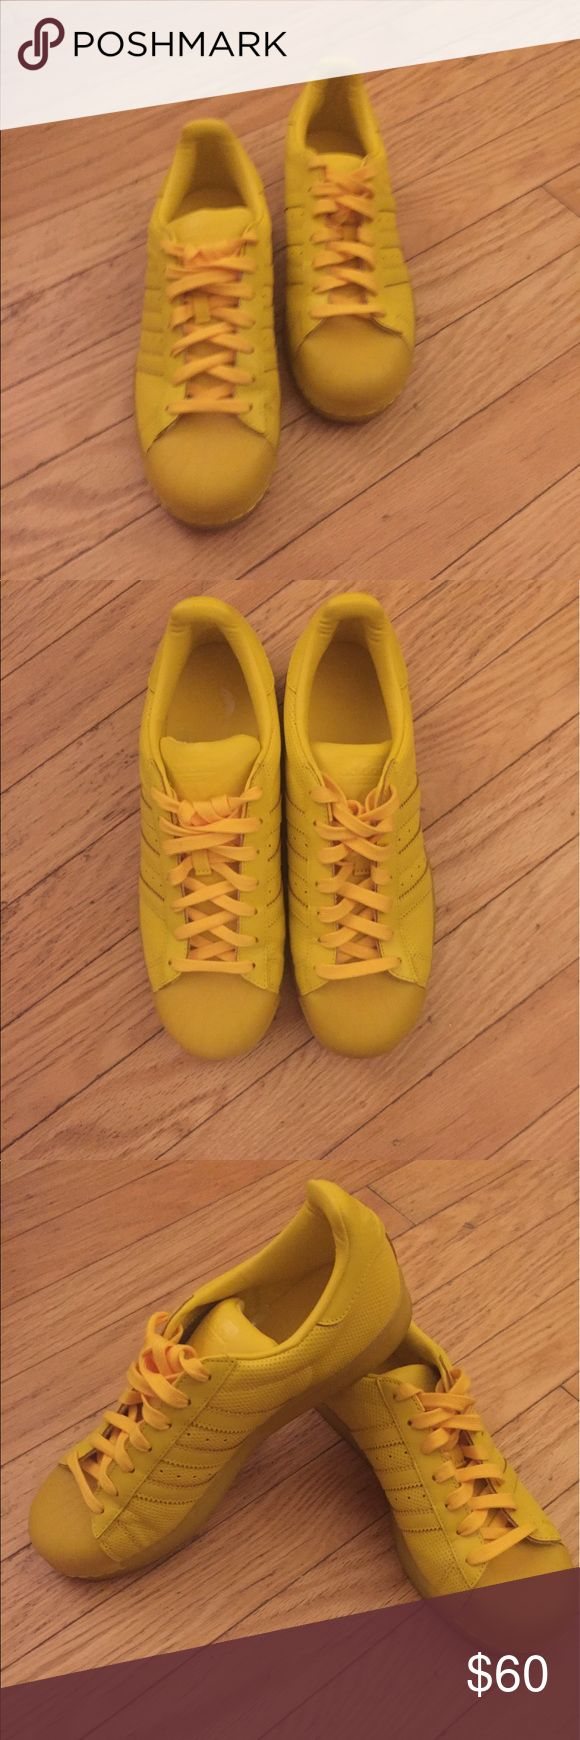 Adidas sneakers men's 9 1/2 women's 10 1/2 Yellow Adidas shell-tops worn only twice Adidas Shoes Sneakers